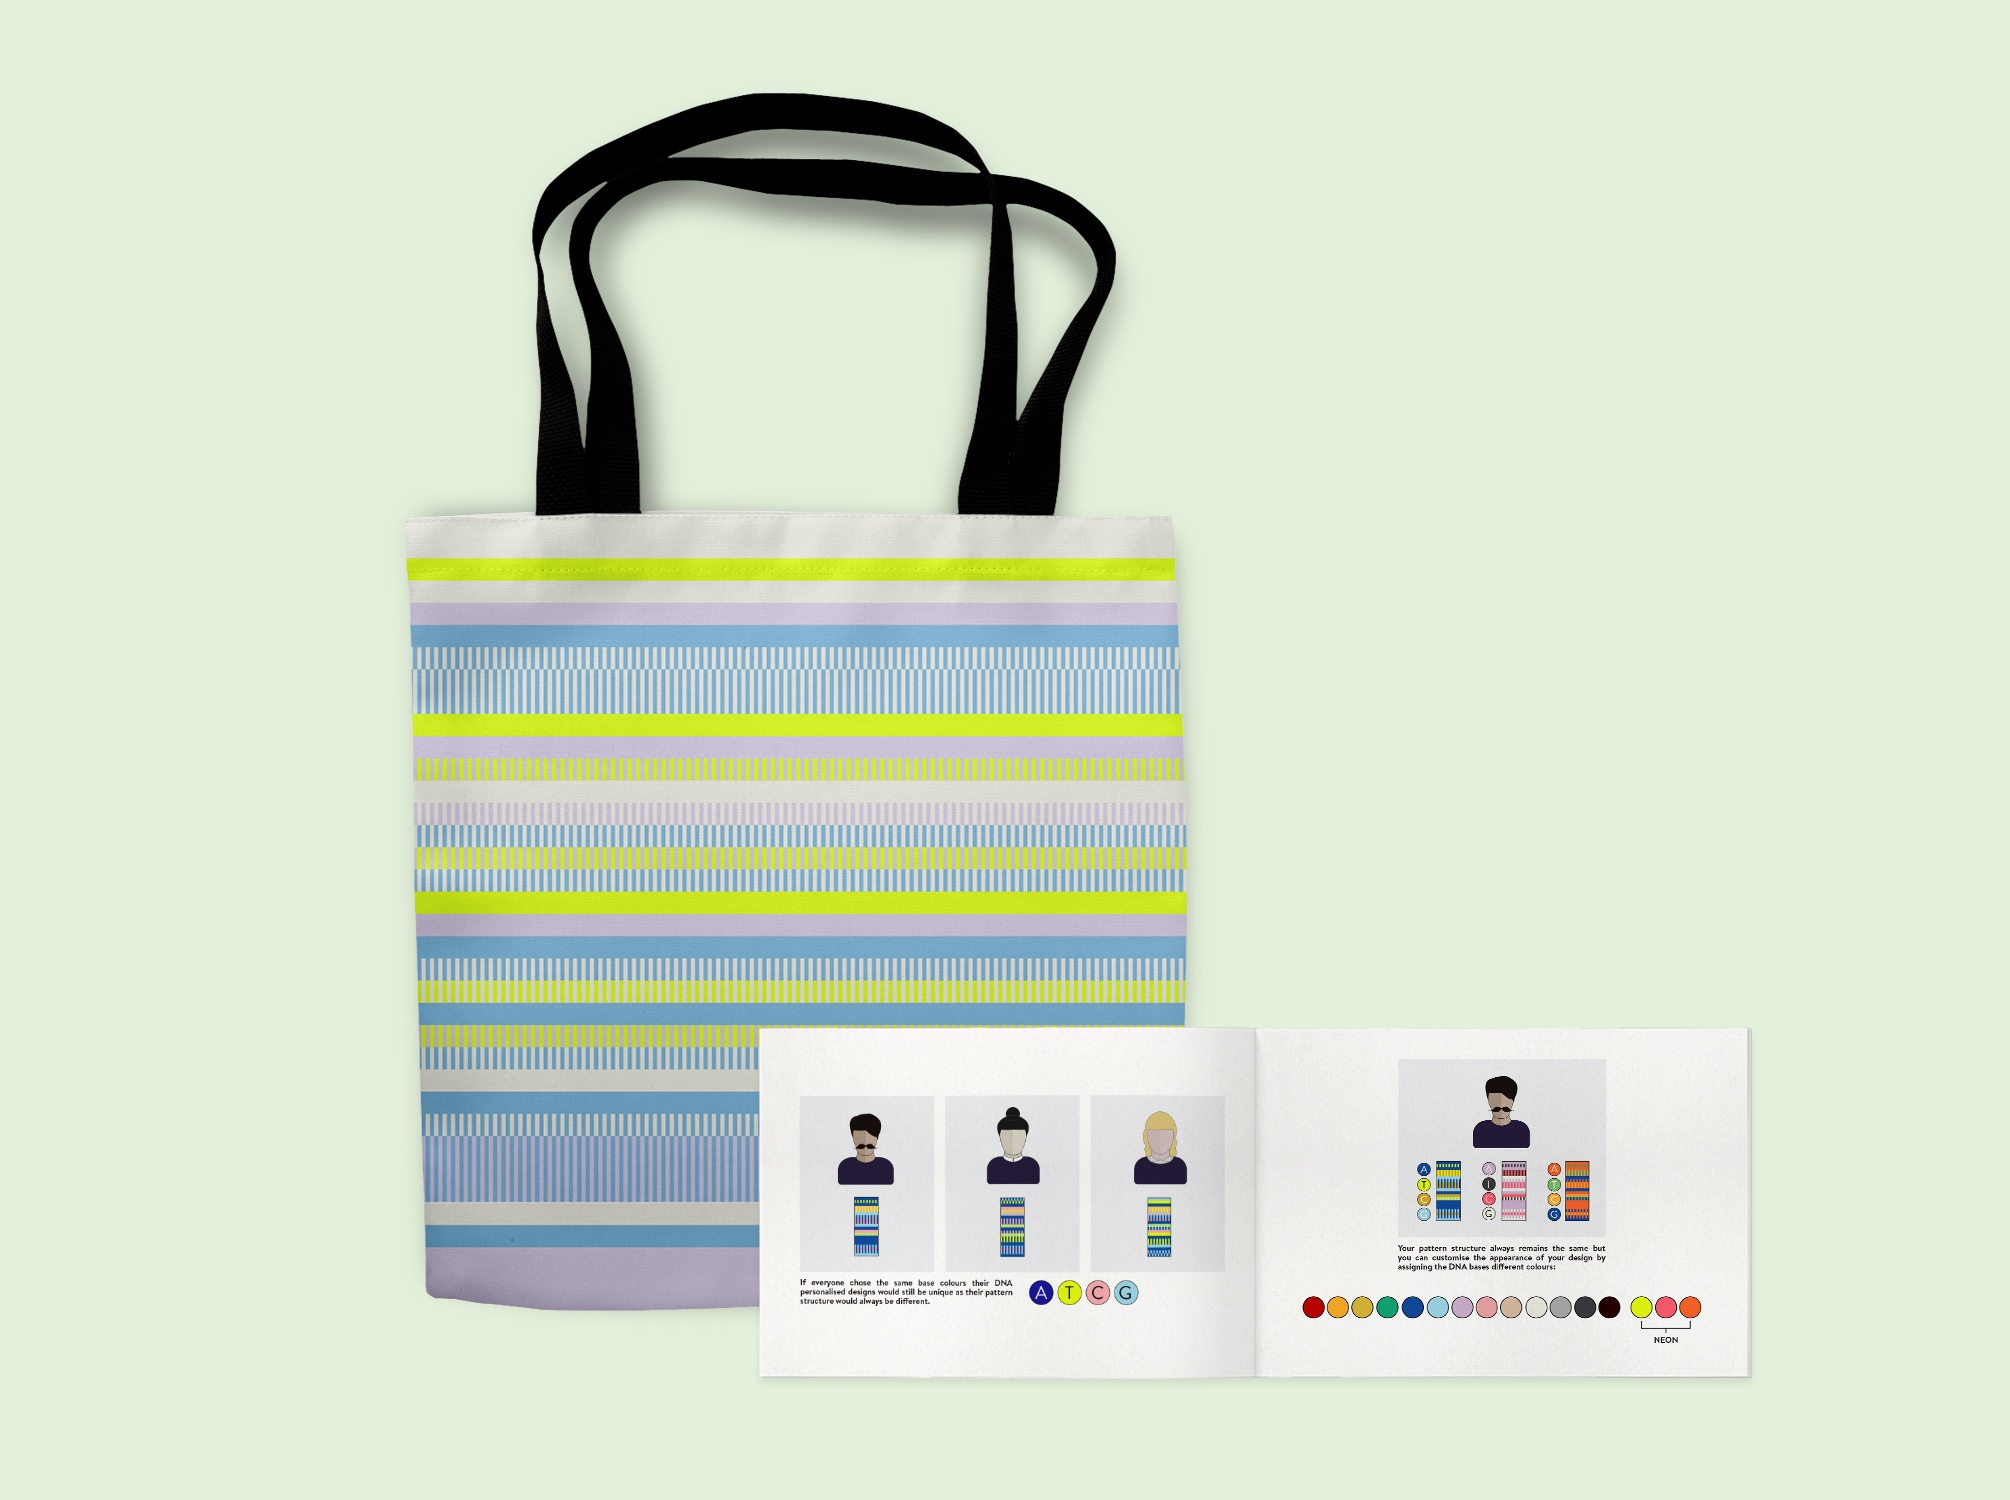 <p><strong>The most entertaining tote you'll own</strong><br>The illustrated booklet is a simple and fun way to learn about DNA sequencing. It also comes with a key so you can decode the information visualized in your personalized design.</p>